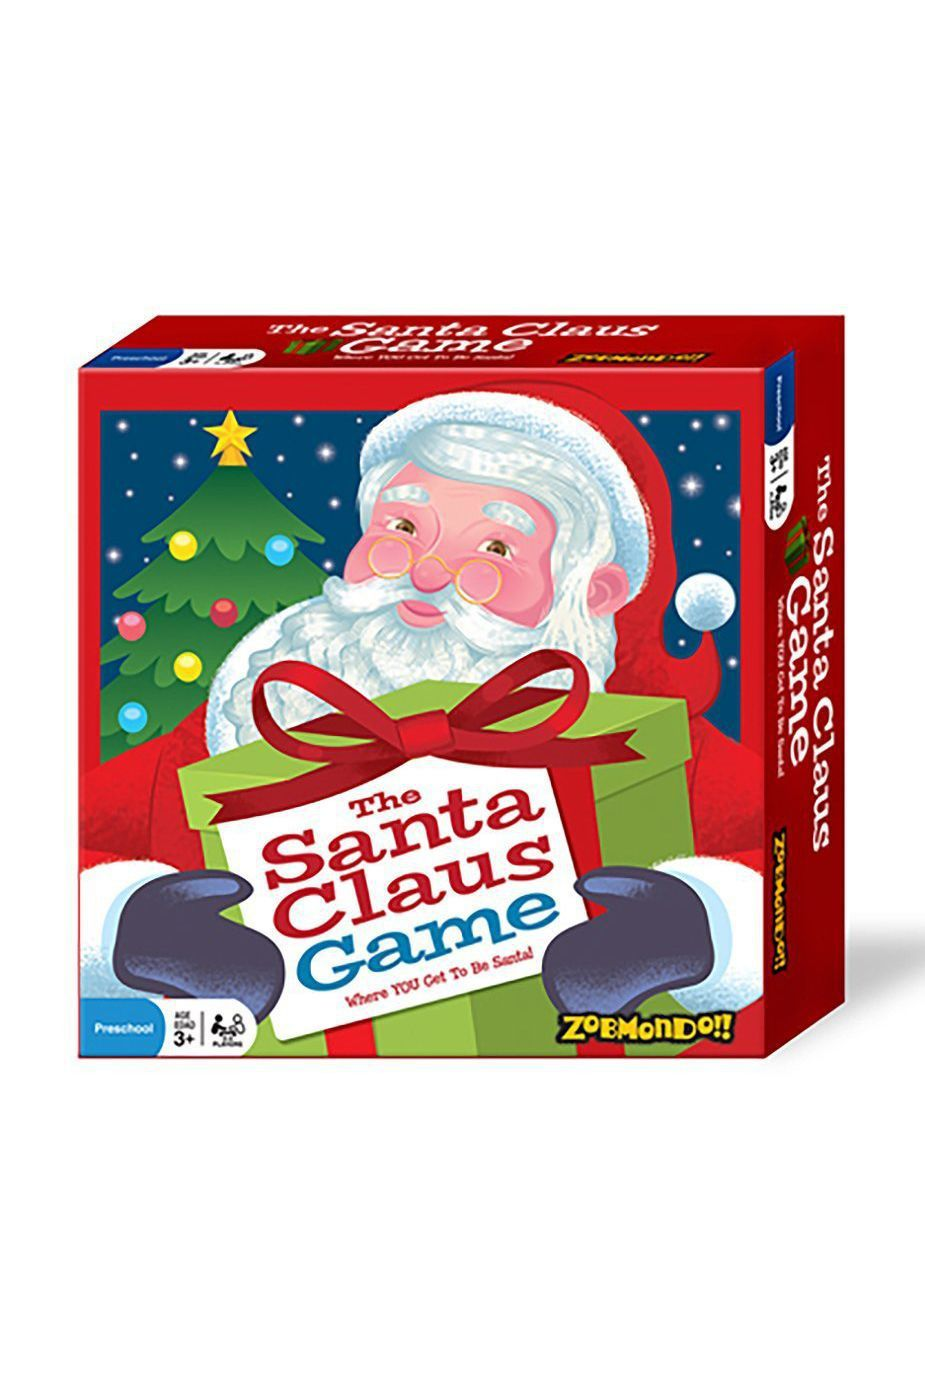 26 fun christmas games to play with the family homemade christmas party games - Christmas Game